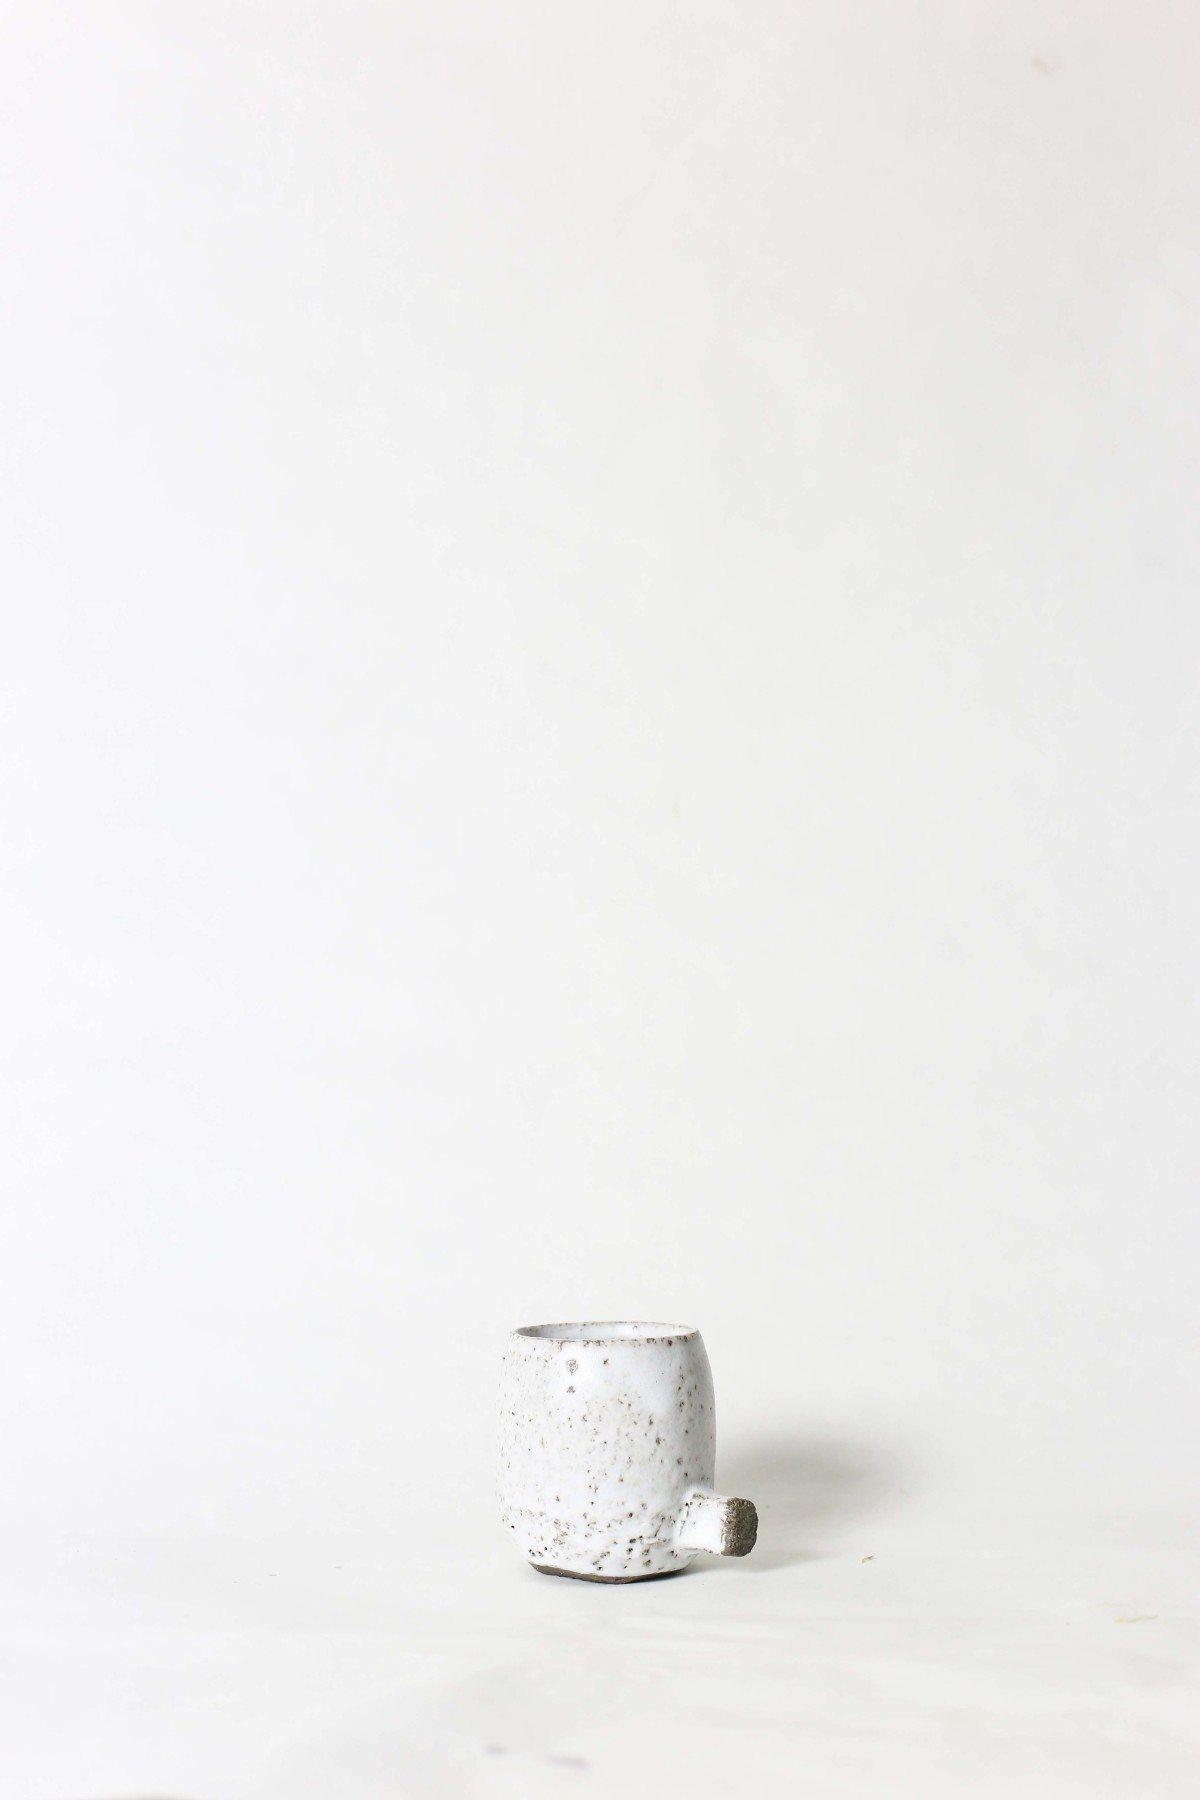 White ceramic cup with knot below on a white background